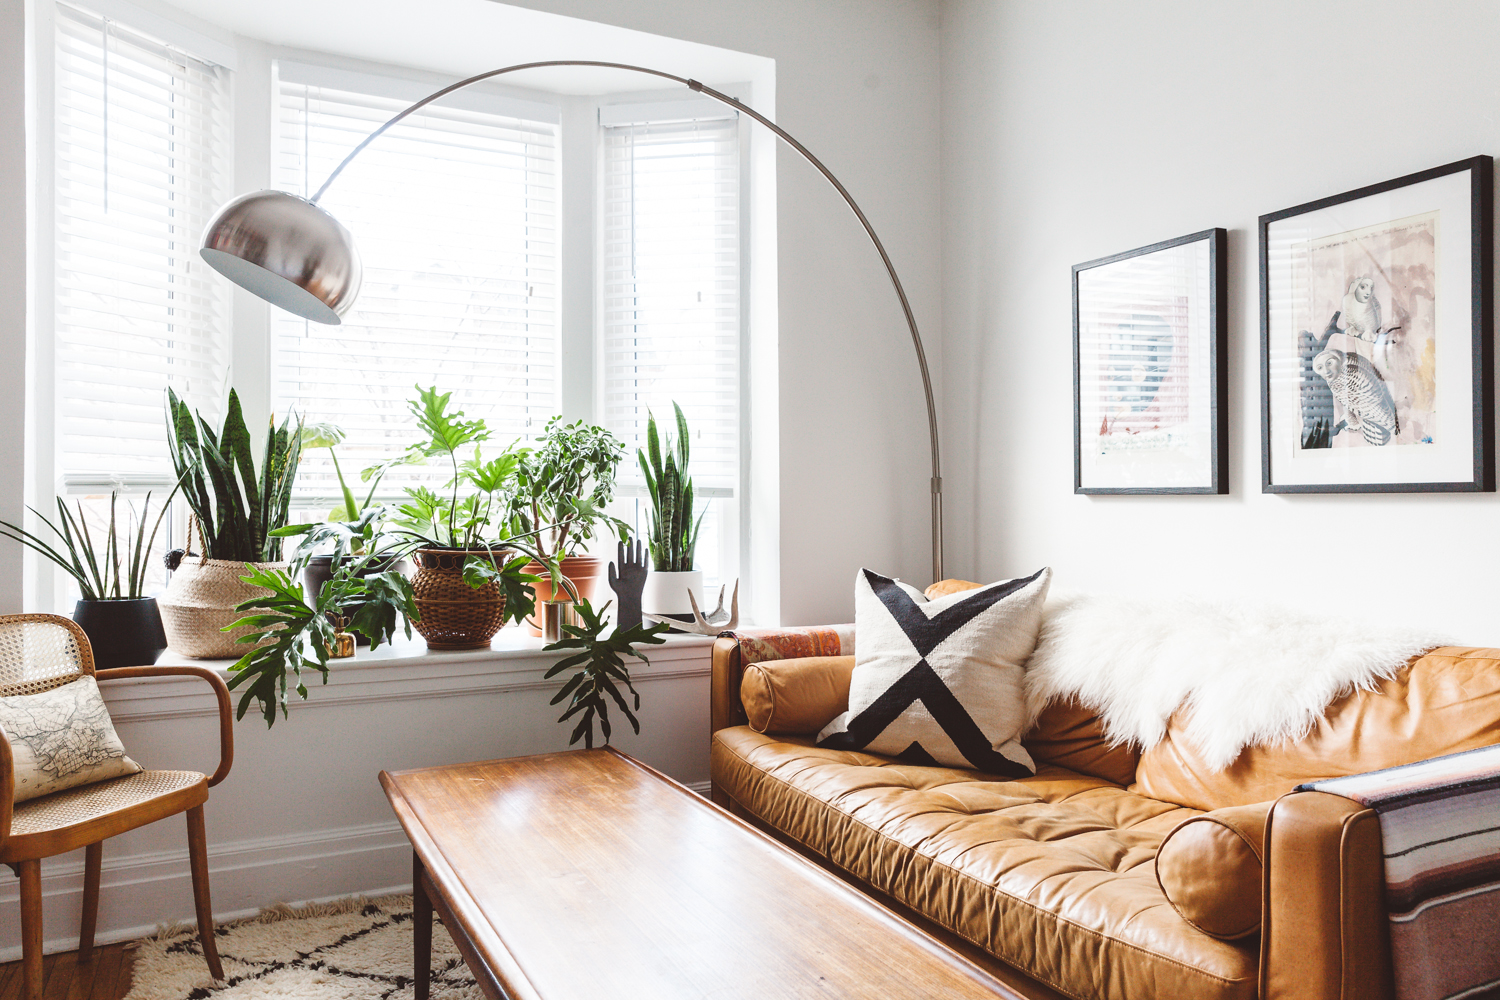 living room with plants on window seat